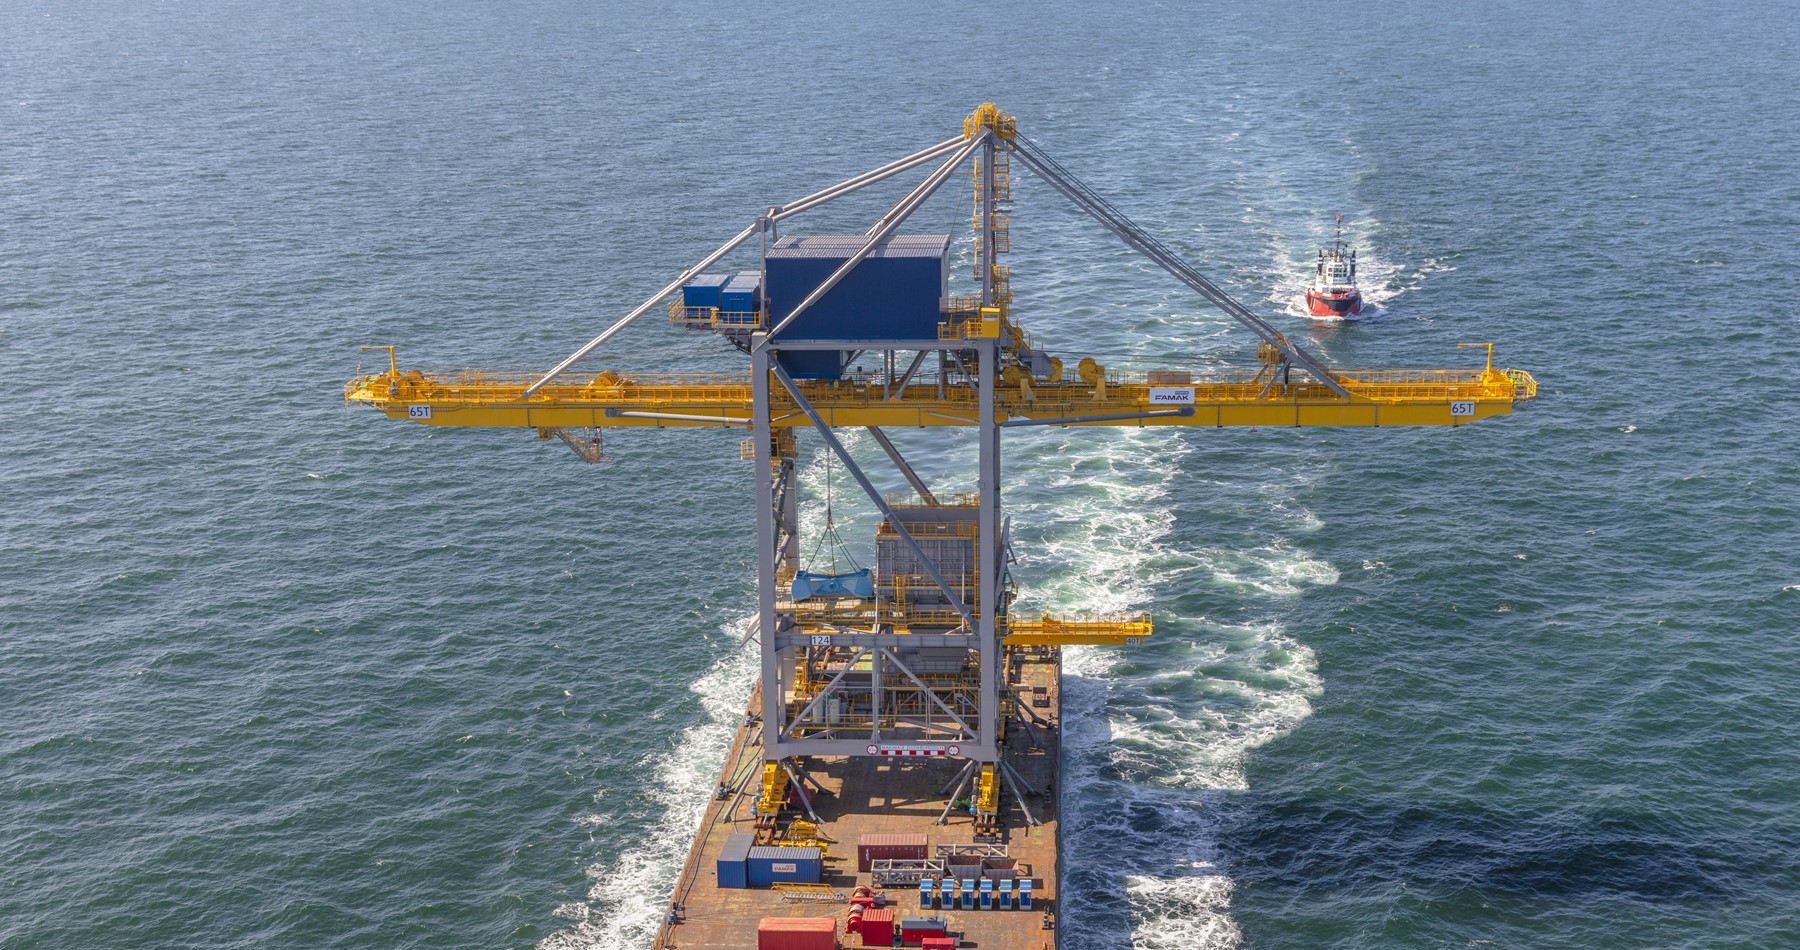 Wagenborg tows a new port crane from Poland to Tata Steel in IJmuiden